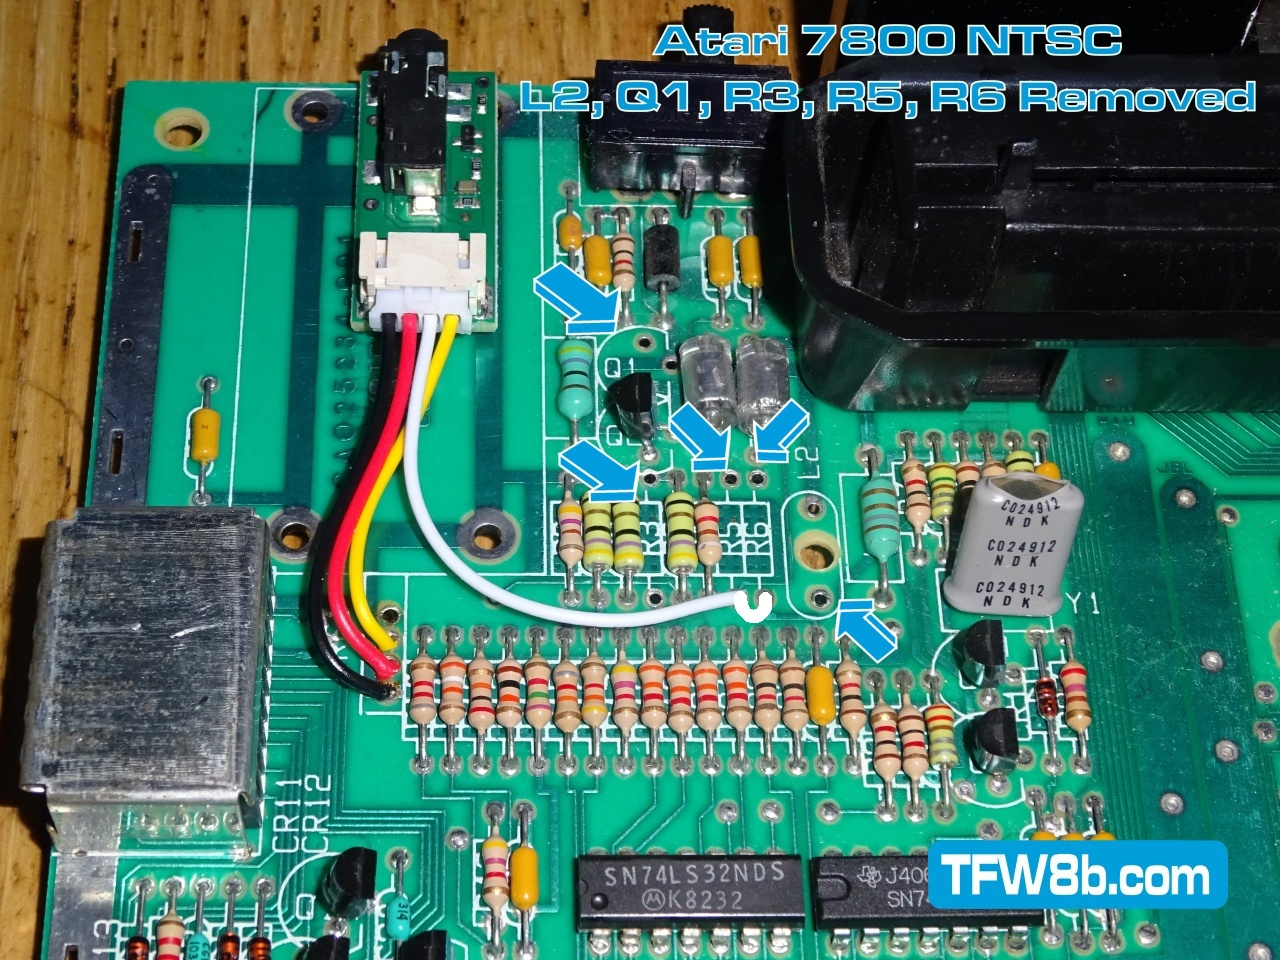 Atari 7800 NTSC Deluxe Composite Video Mod